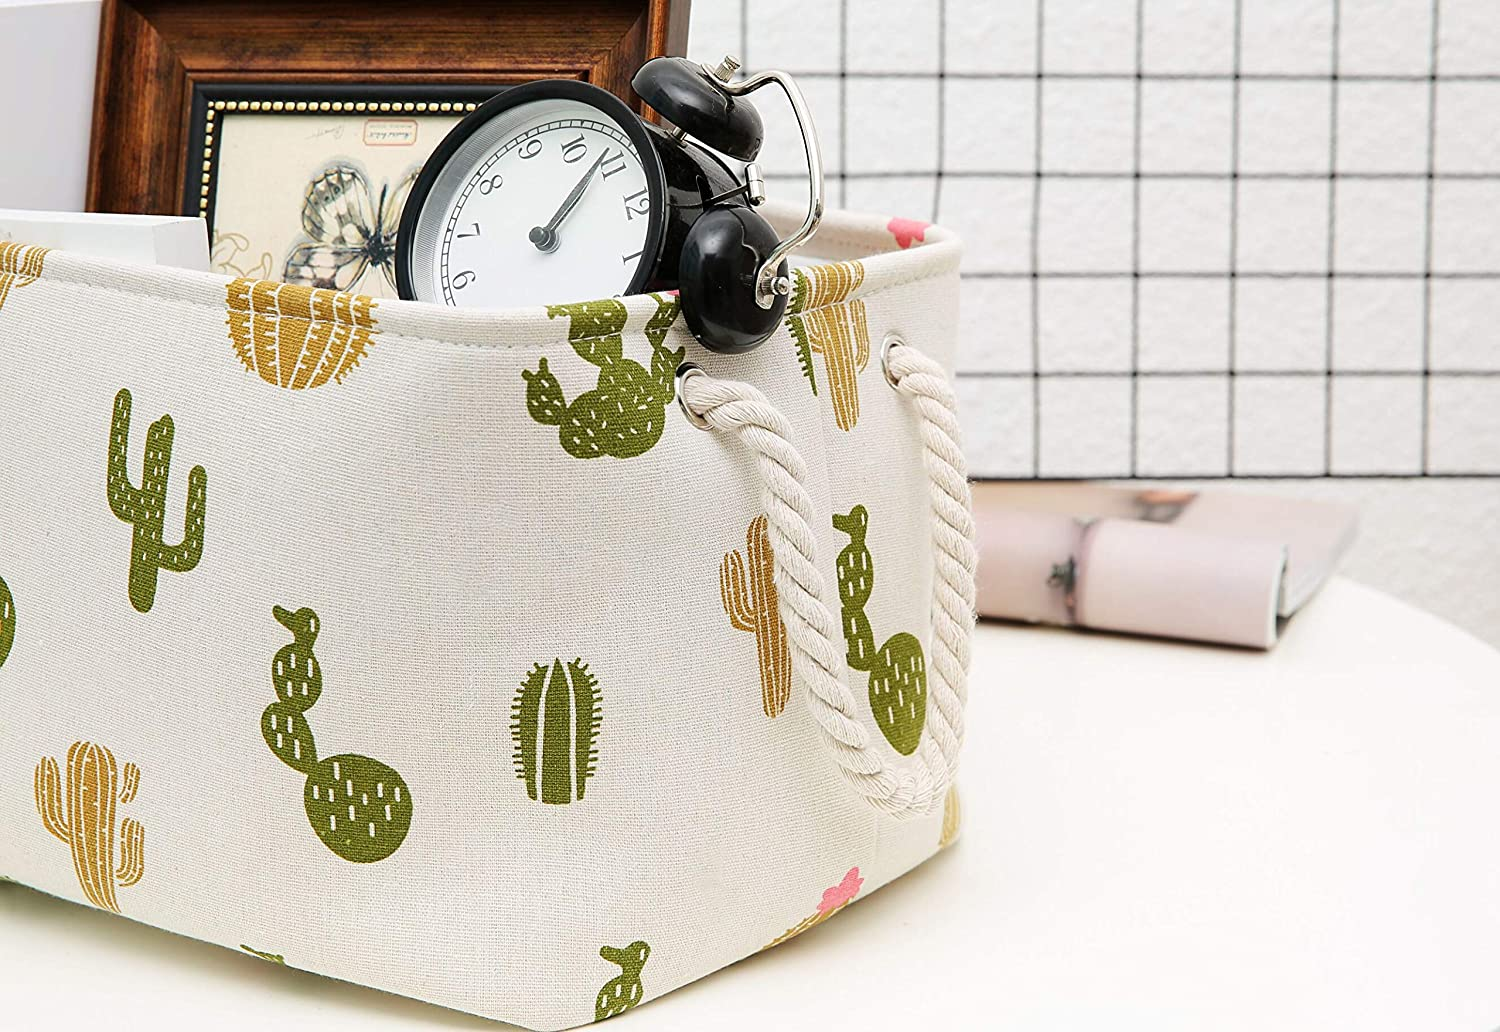 Cactus, M:13.4 L AOLIWEN Storage Bins Baskets Polyester Cotton Waterproof Fabric Storage Bins for Cloth Storage Bathroom Storage Baskets for Closet Storage,Toys Books Basket for Gifts 3 Size